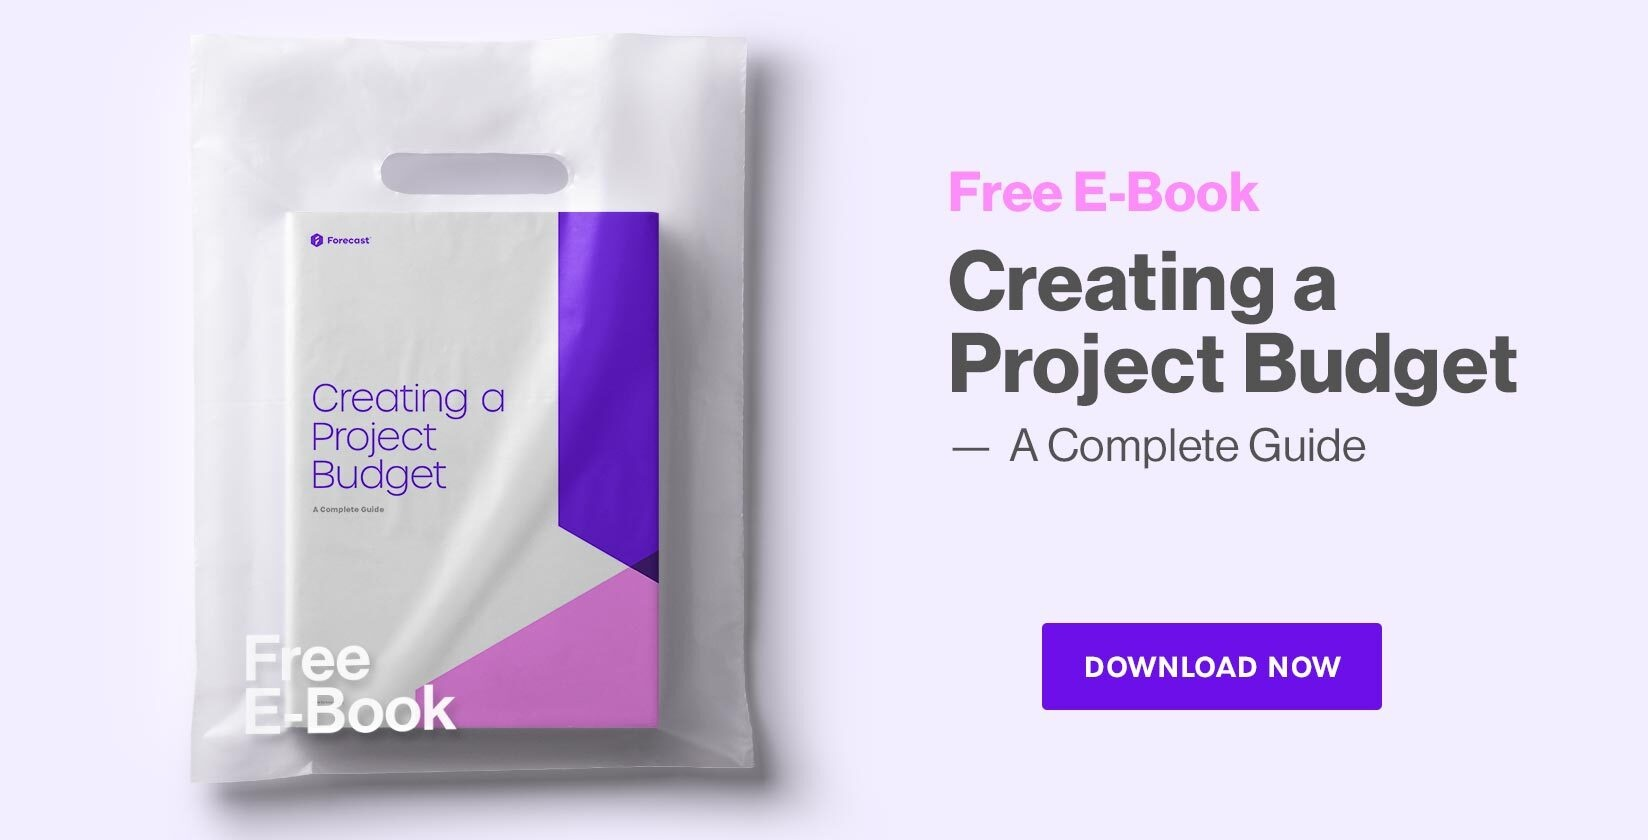 FREE E-BOOK: CREATING A PROJECT BUDGET – A COMPLETE GUIDE FOR 2020